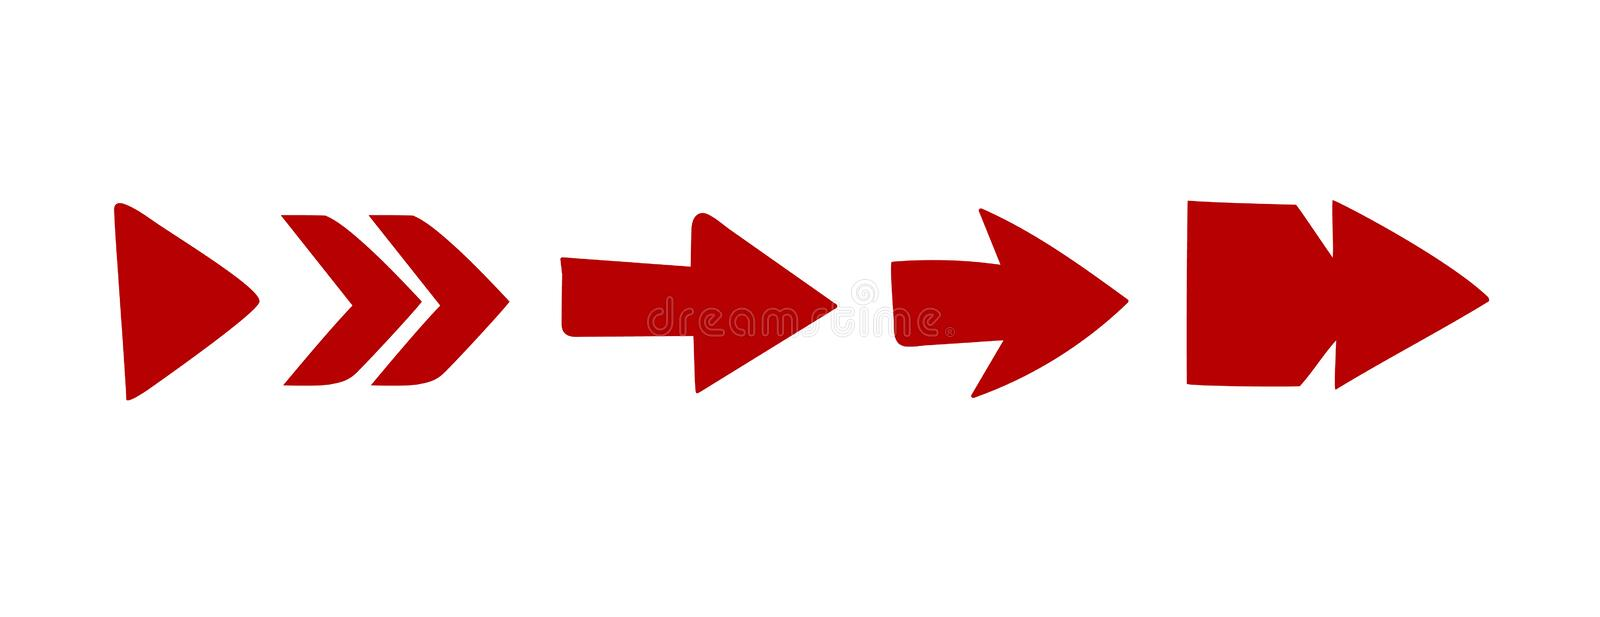 Vector arrow Red Arrow series various styles red on white vector stock illustration